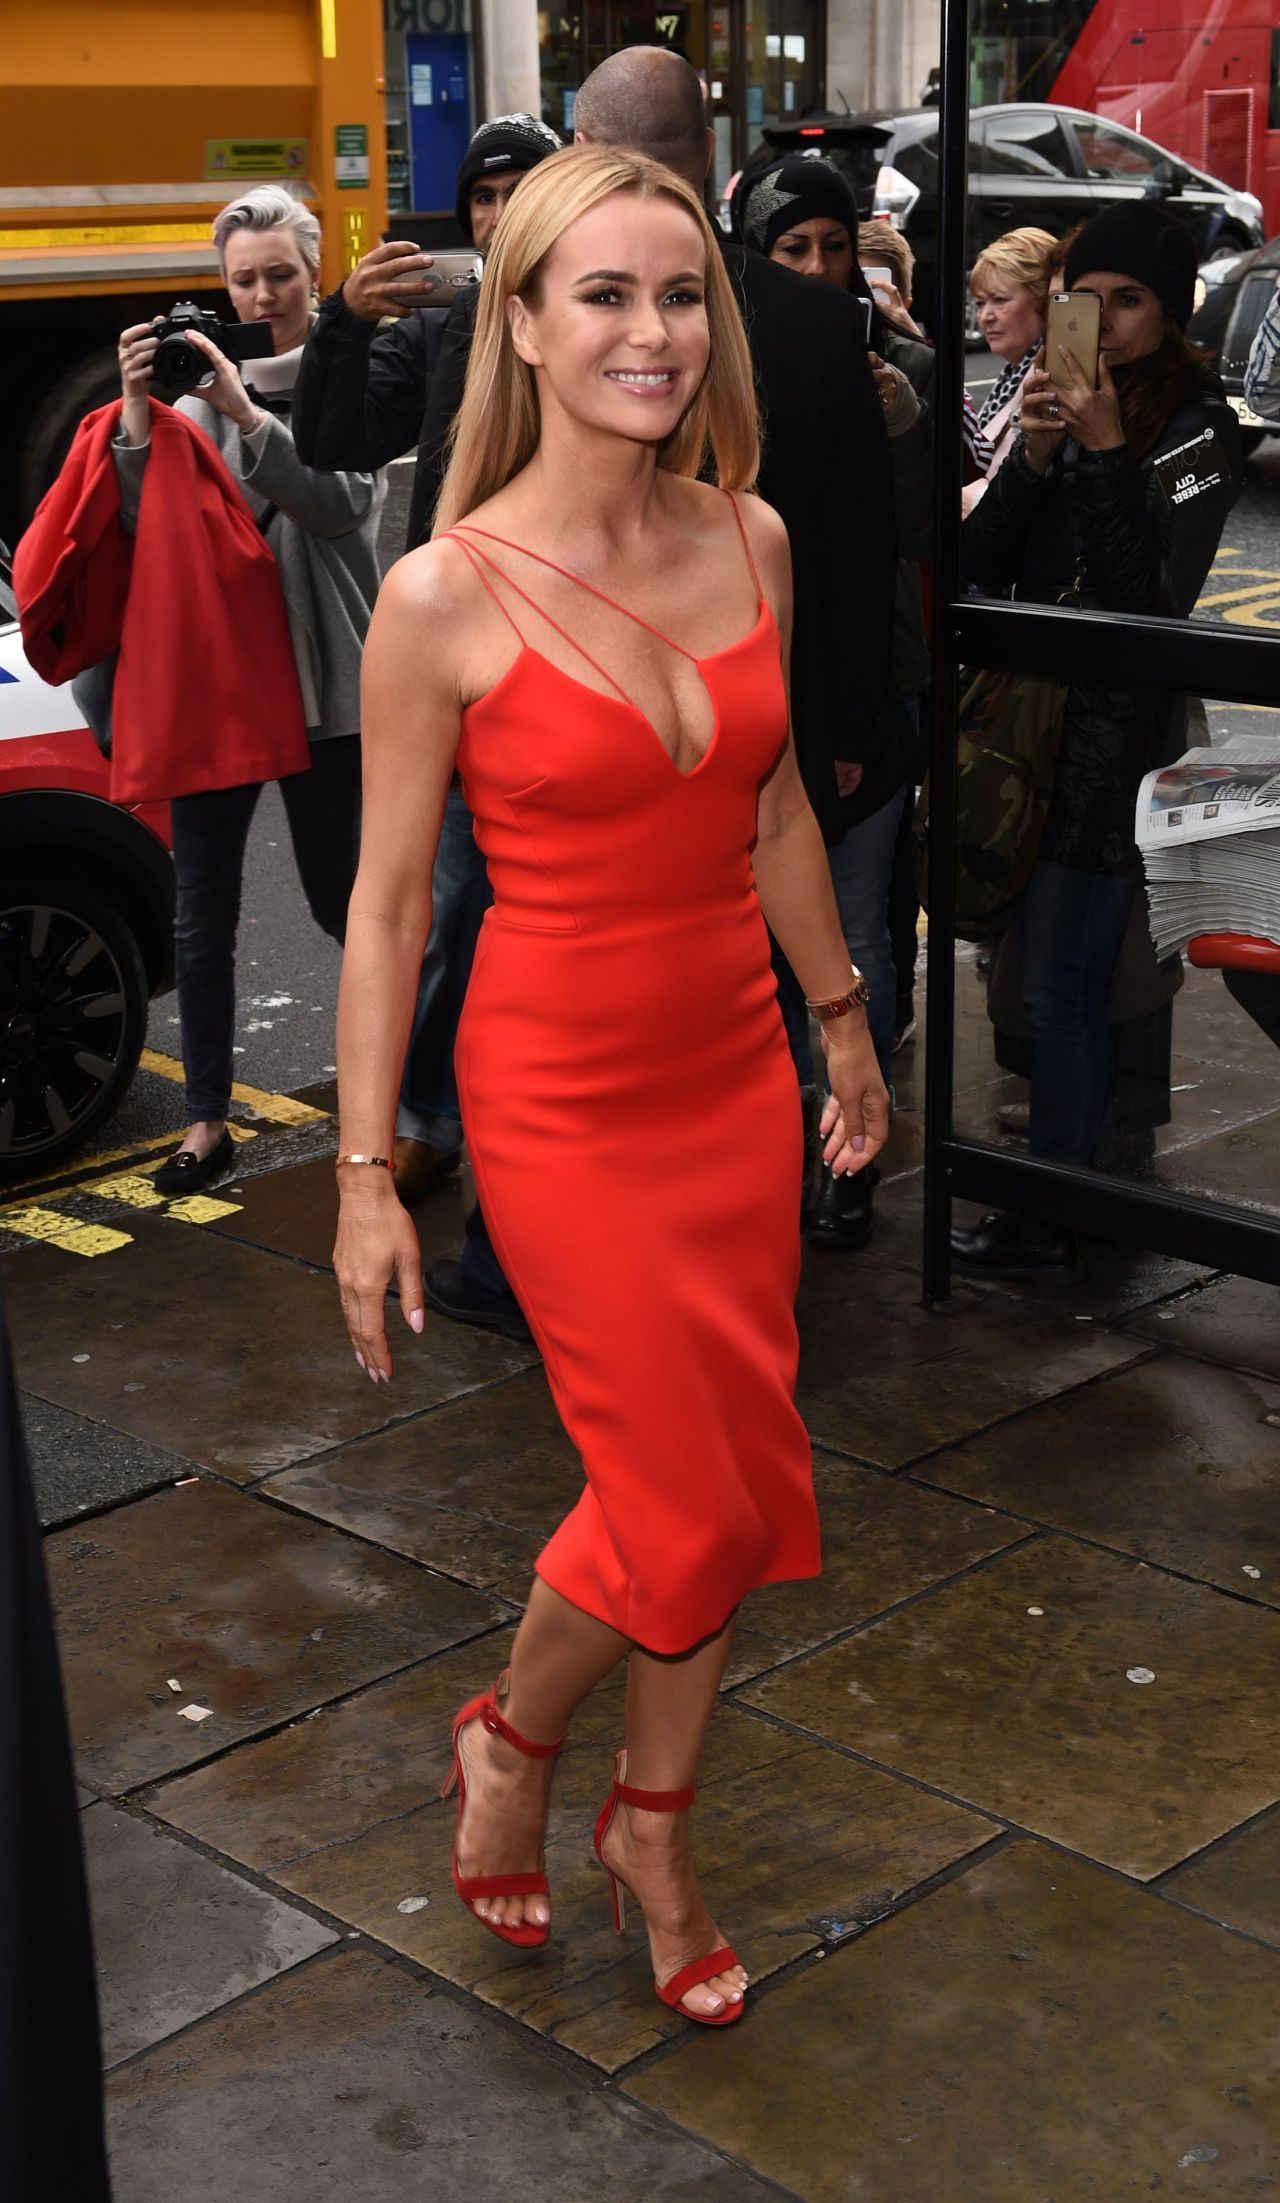 Amanda holden britains got talent naked (52 pics)